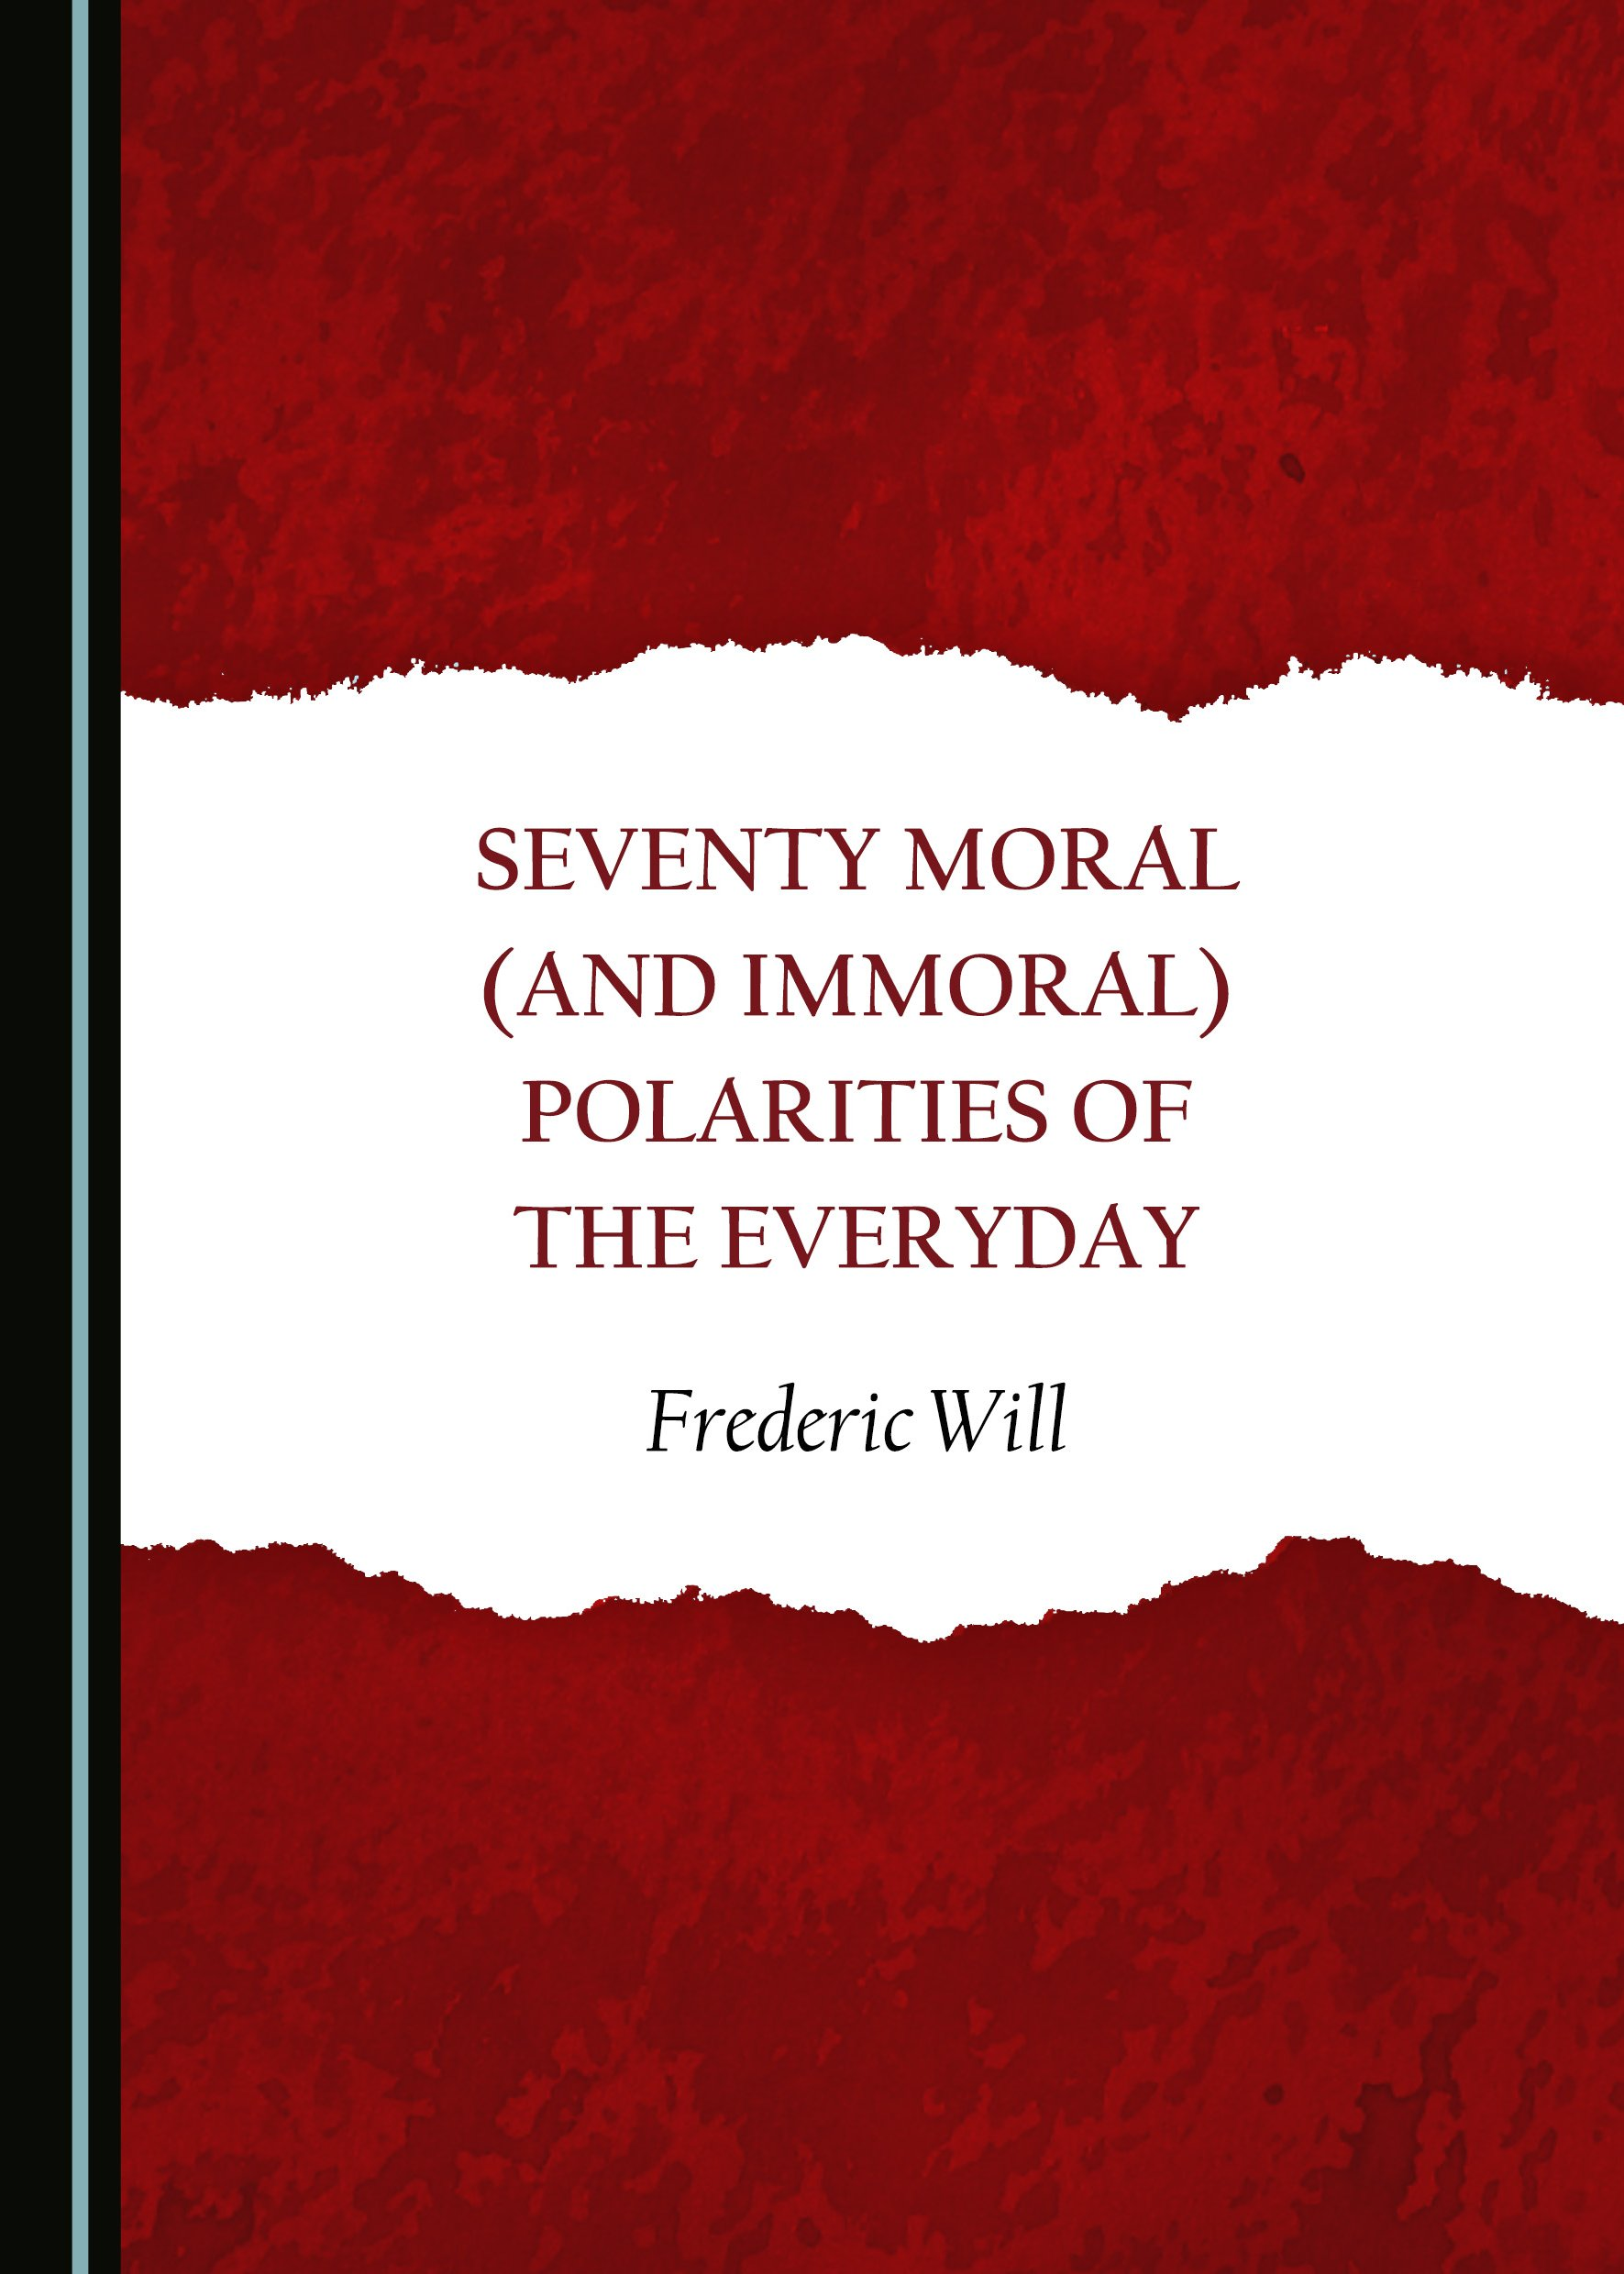 Seventy Moral (and Immoral) Polarities of the Everyday